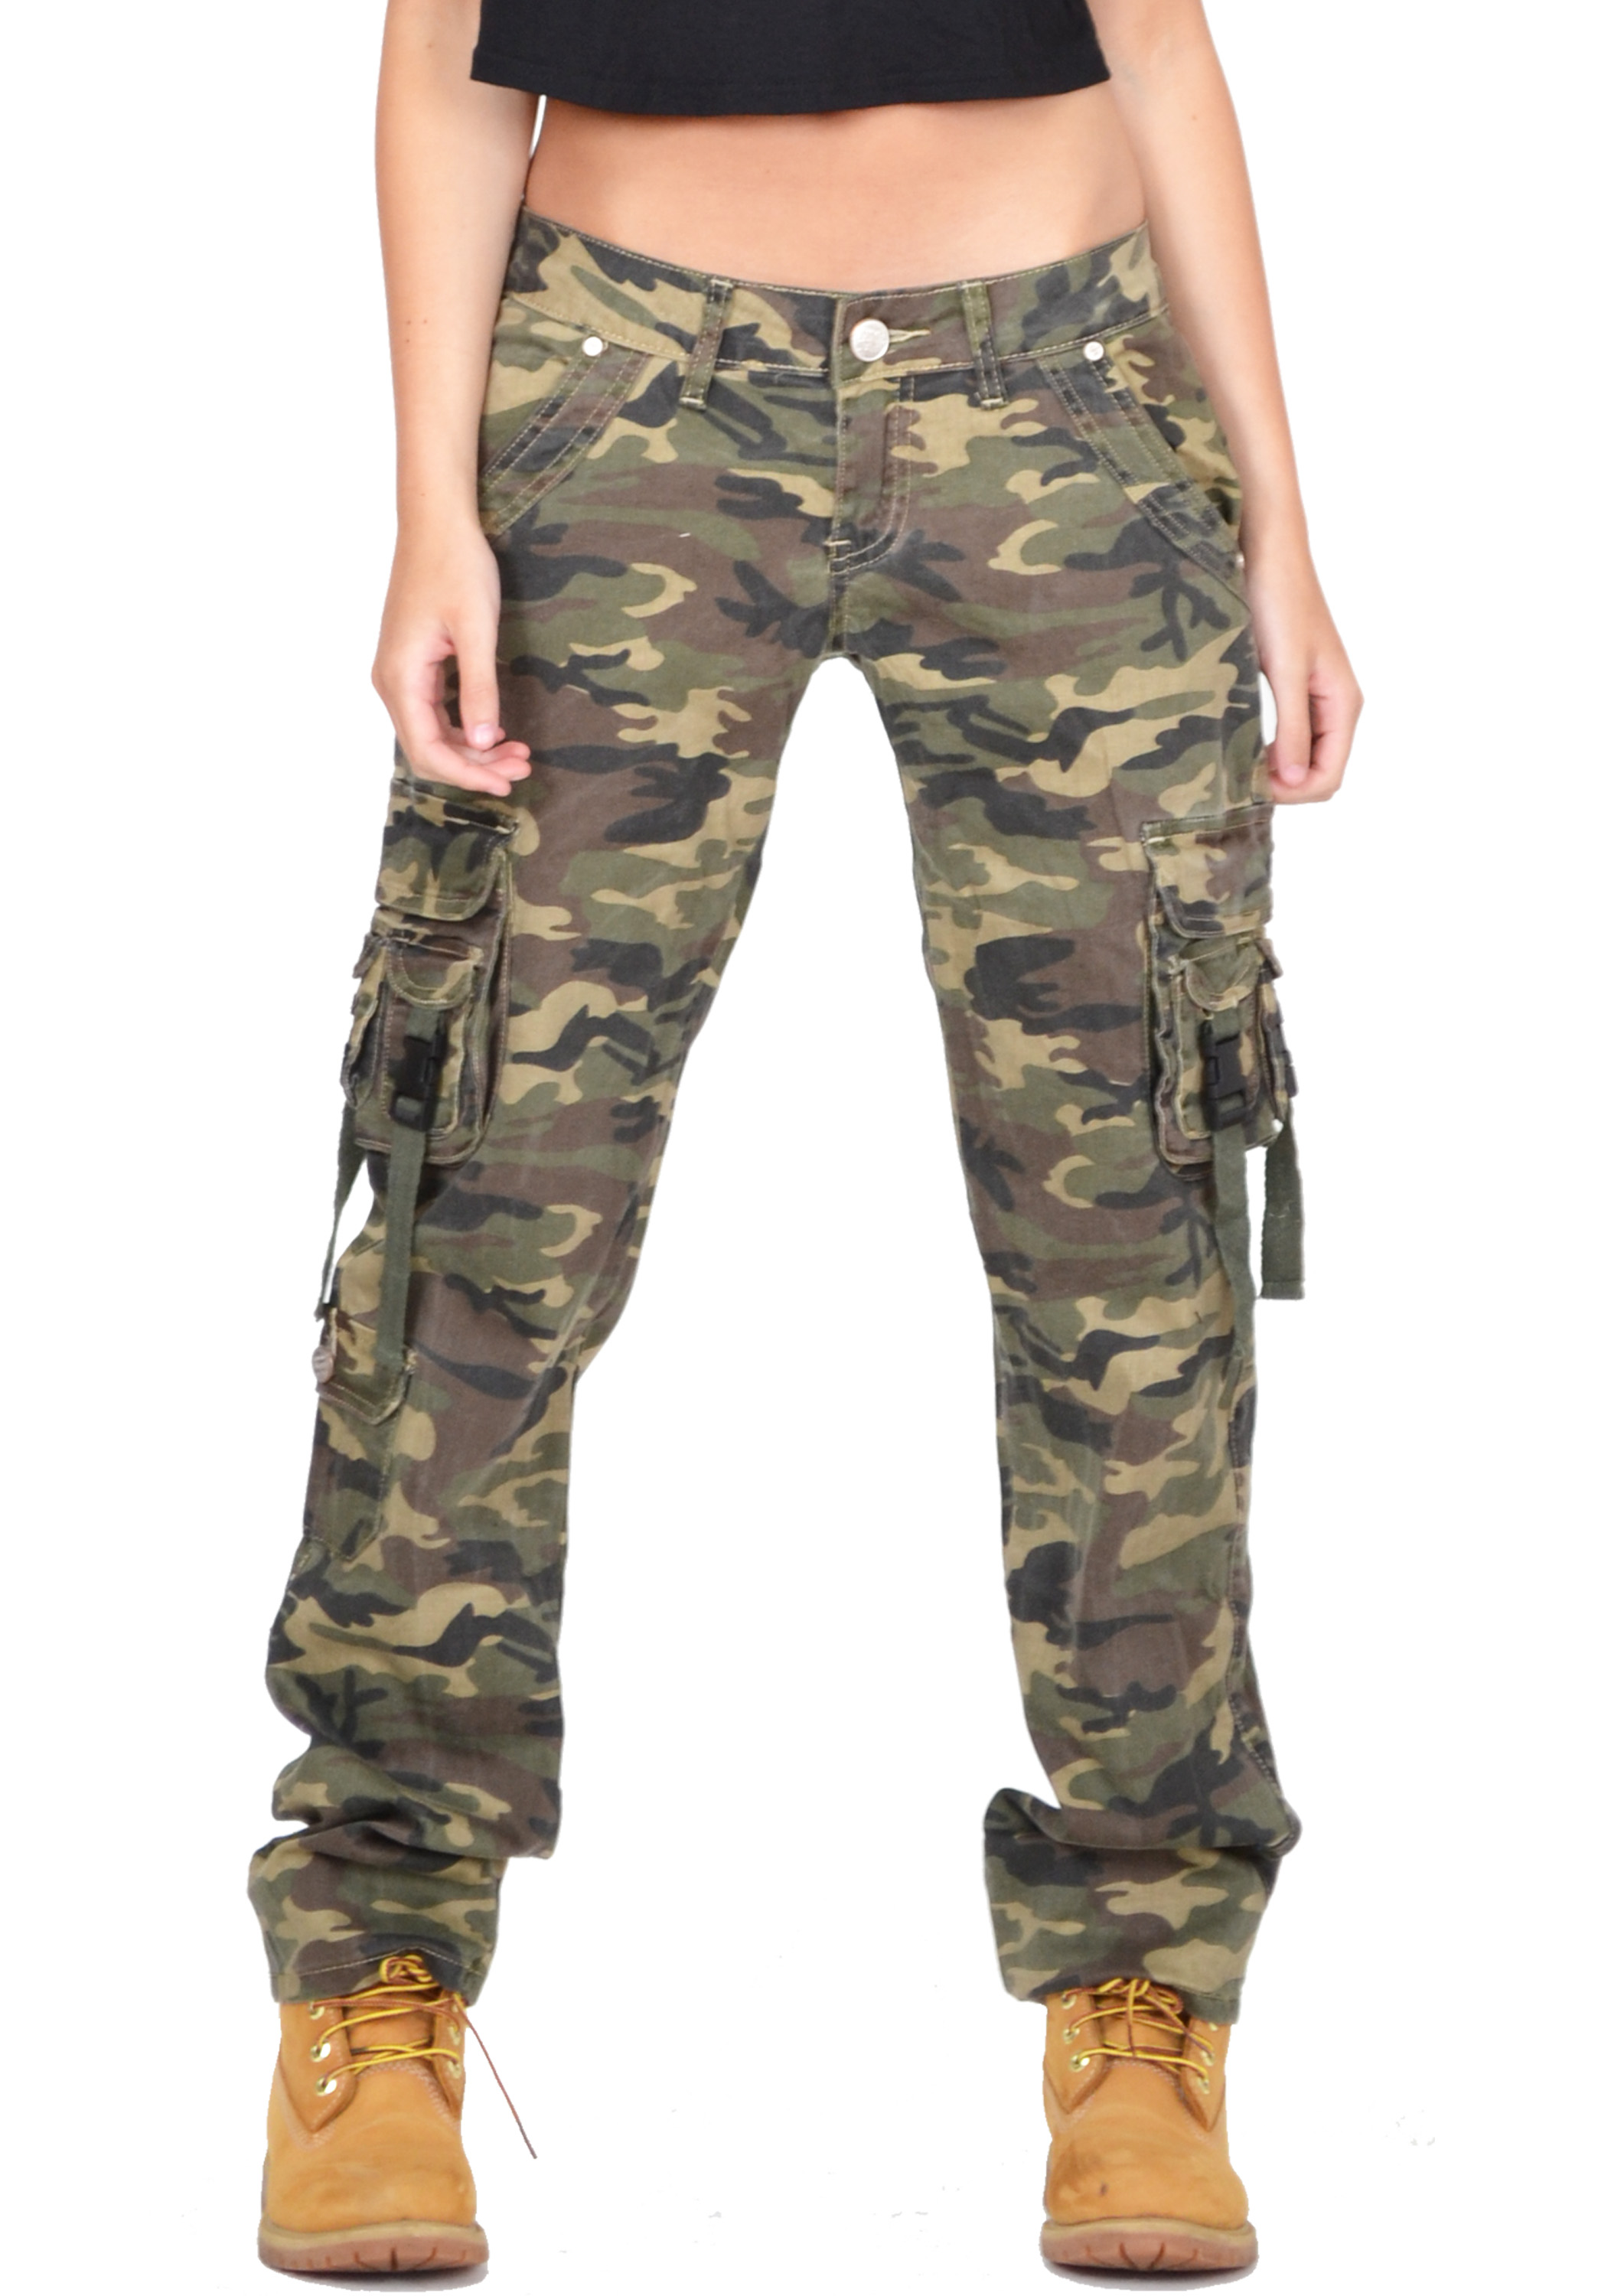 ladies womens army military green camouflage cargo pants. Black Bedroom Furniture Sets. Home Design Ideas